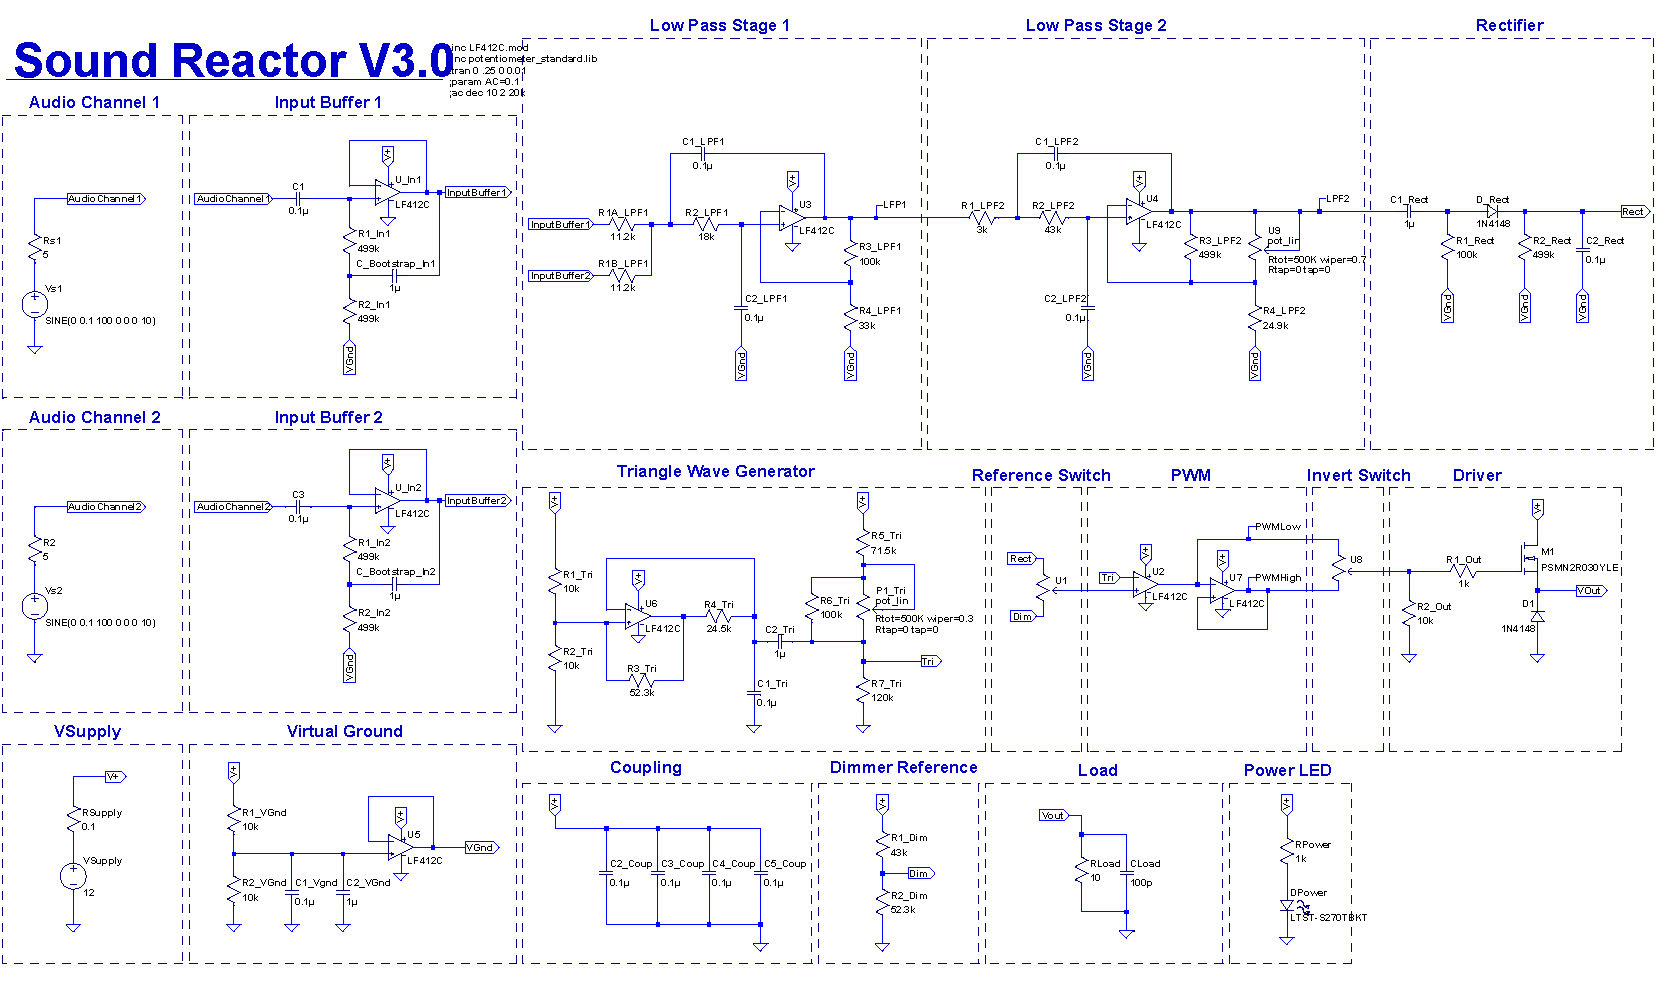 Led Sound Reactor All Analog Approach Pcb Isolation Op Amp Tone Generator Circuit Audio Operational Amplifier This Is Traditionally Done With An Expensive Instrumentation I Opted For A Cheaper And Still Effective Bootstrap Design